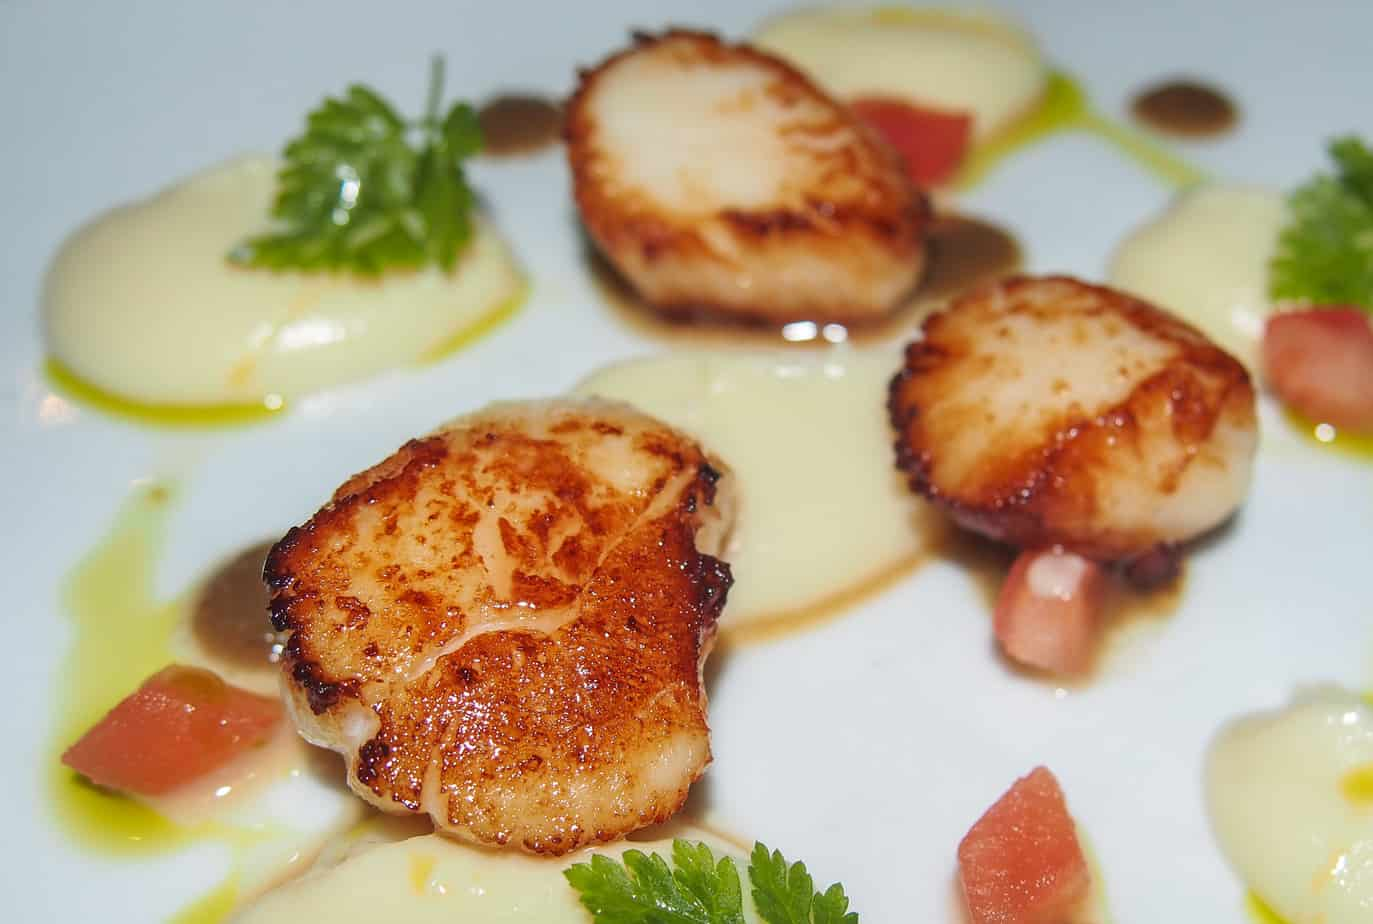 date ideas for Edinburgh - dish of scallops at restaurant